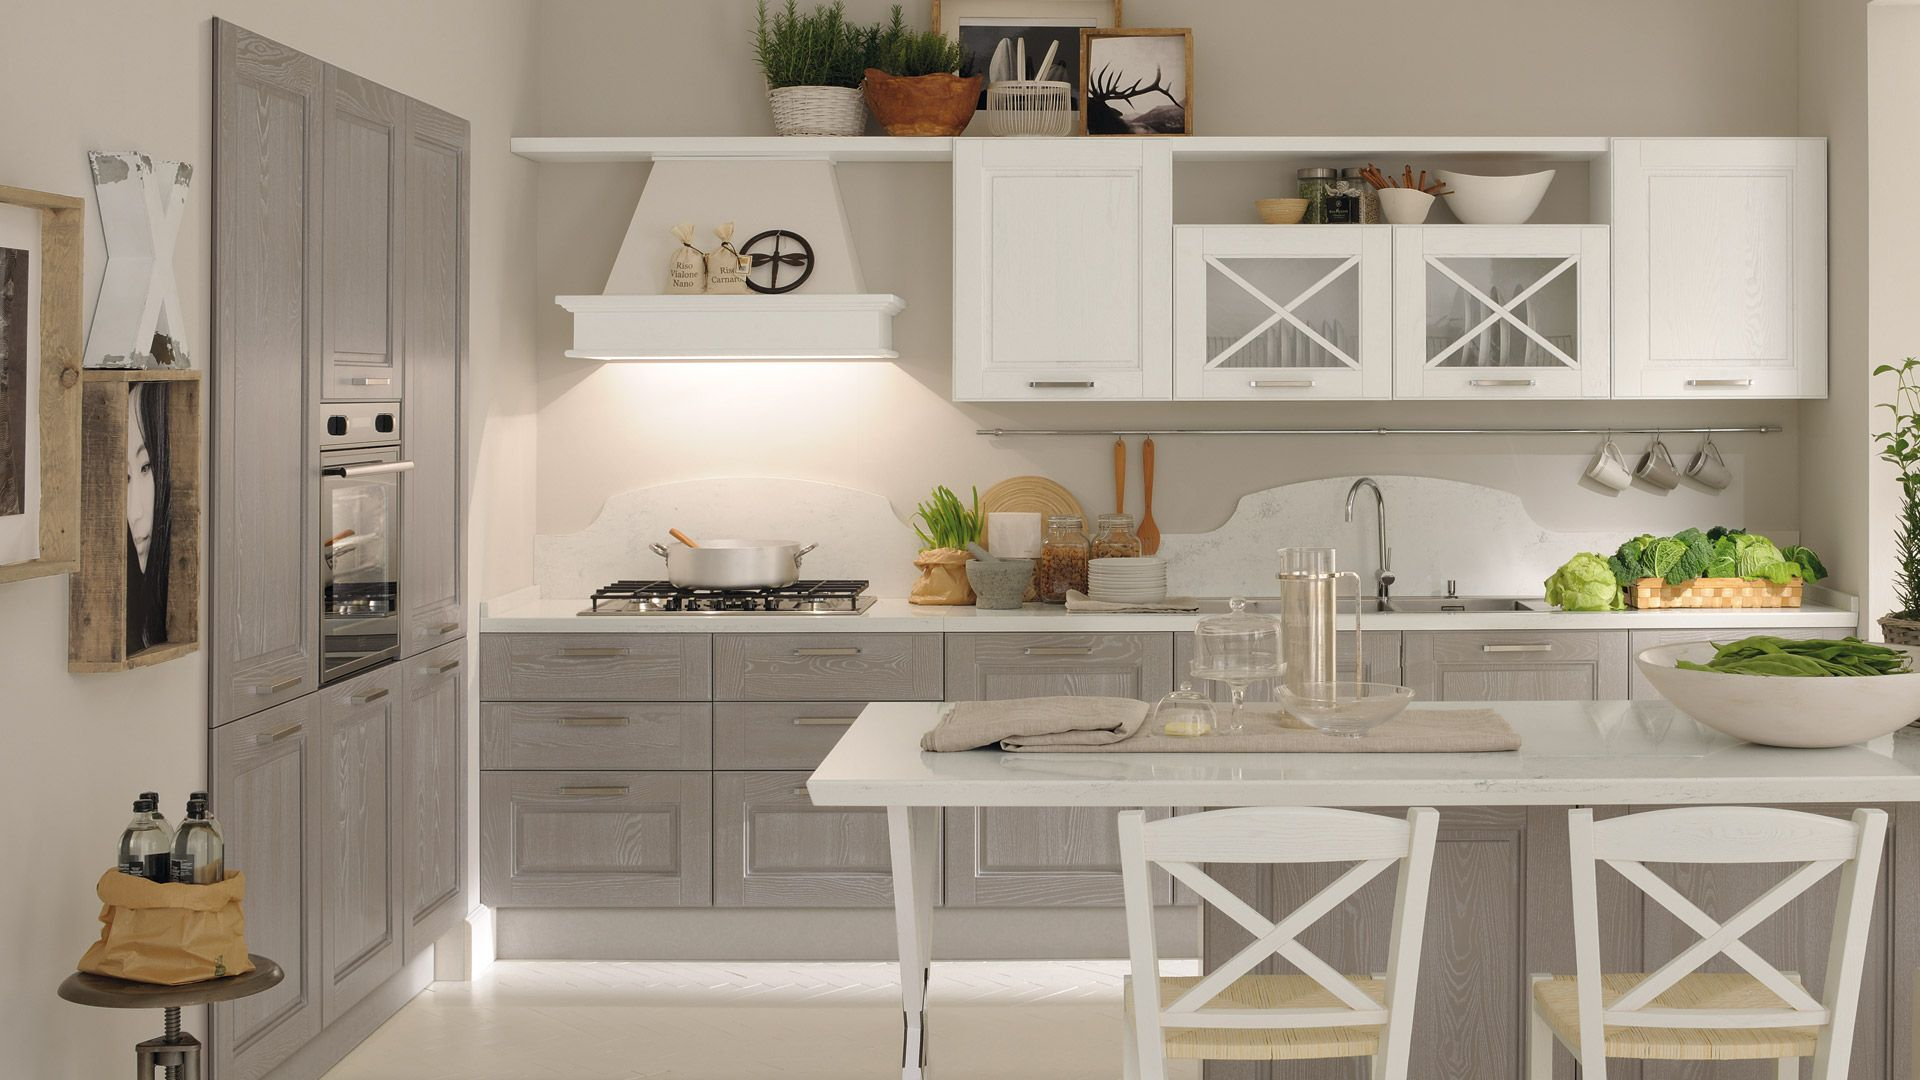 Agnese - Cucine Classiche - Cucine Lube | sweethome | Pinterest ...